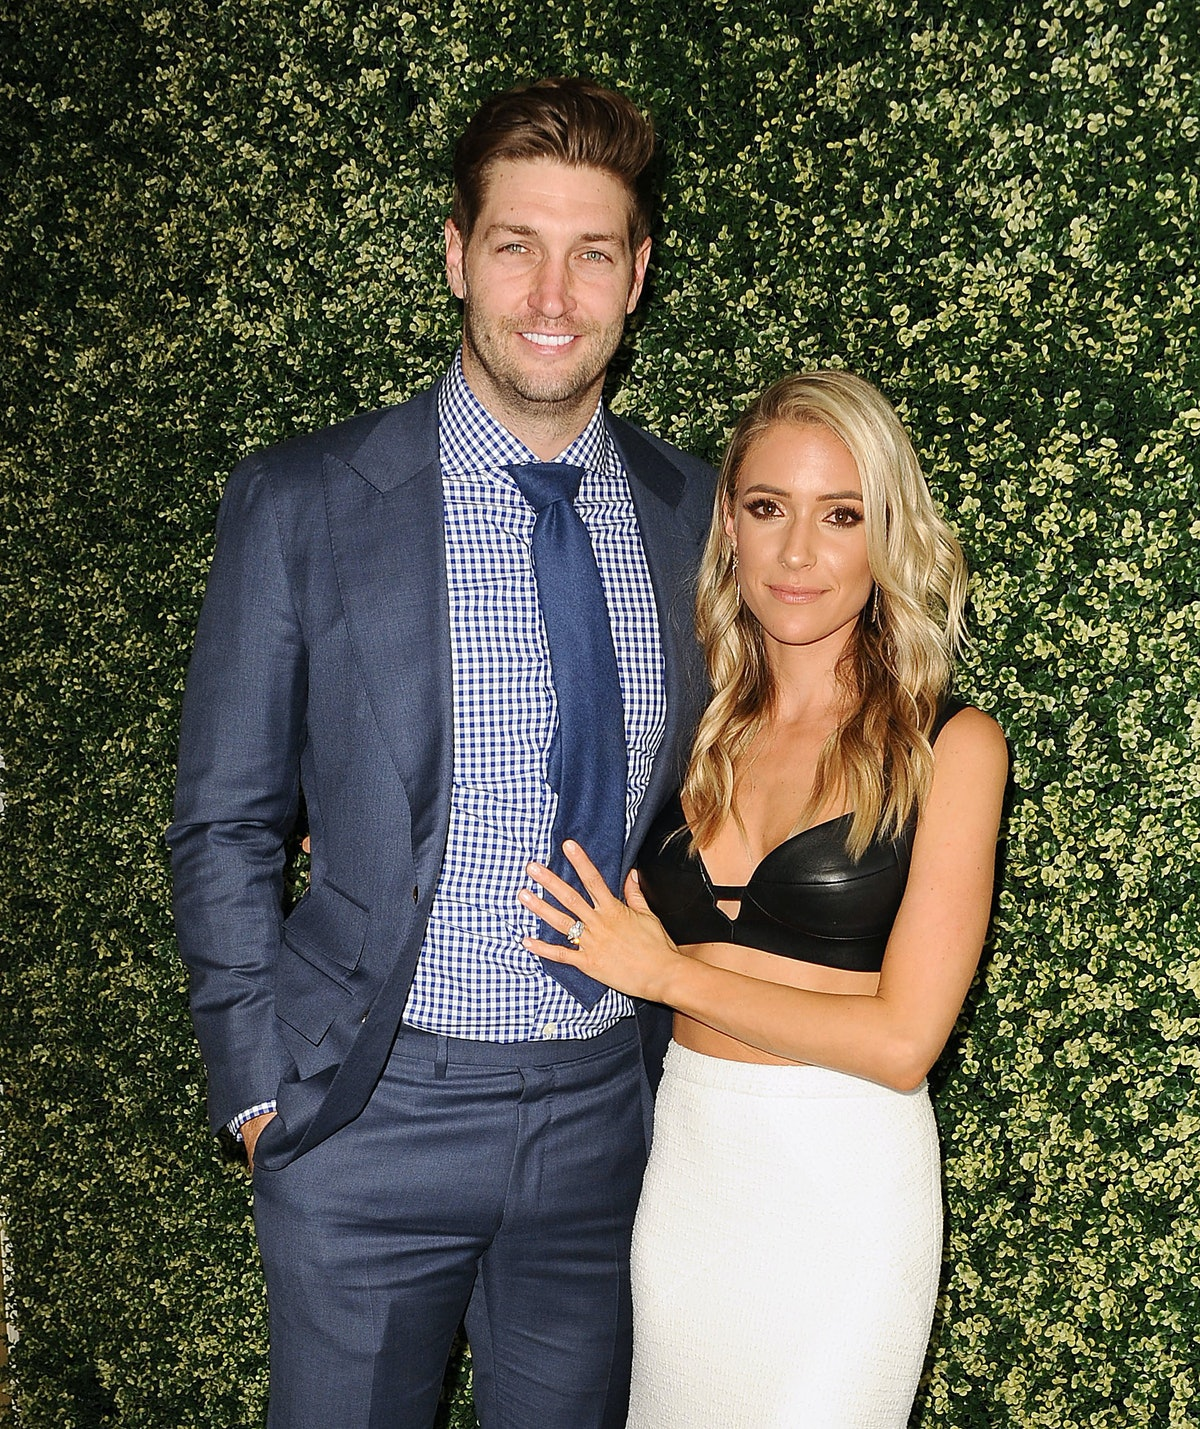 Are Kristin Cavallari and Jay Cutler dating again? Here's the scoop.